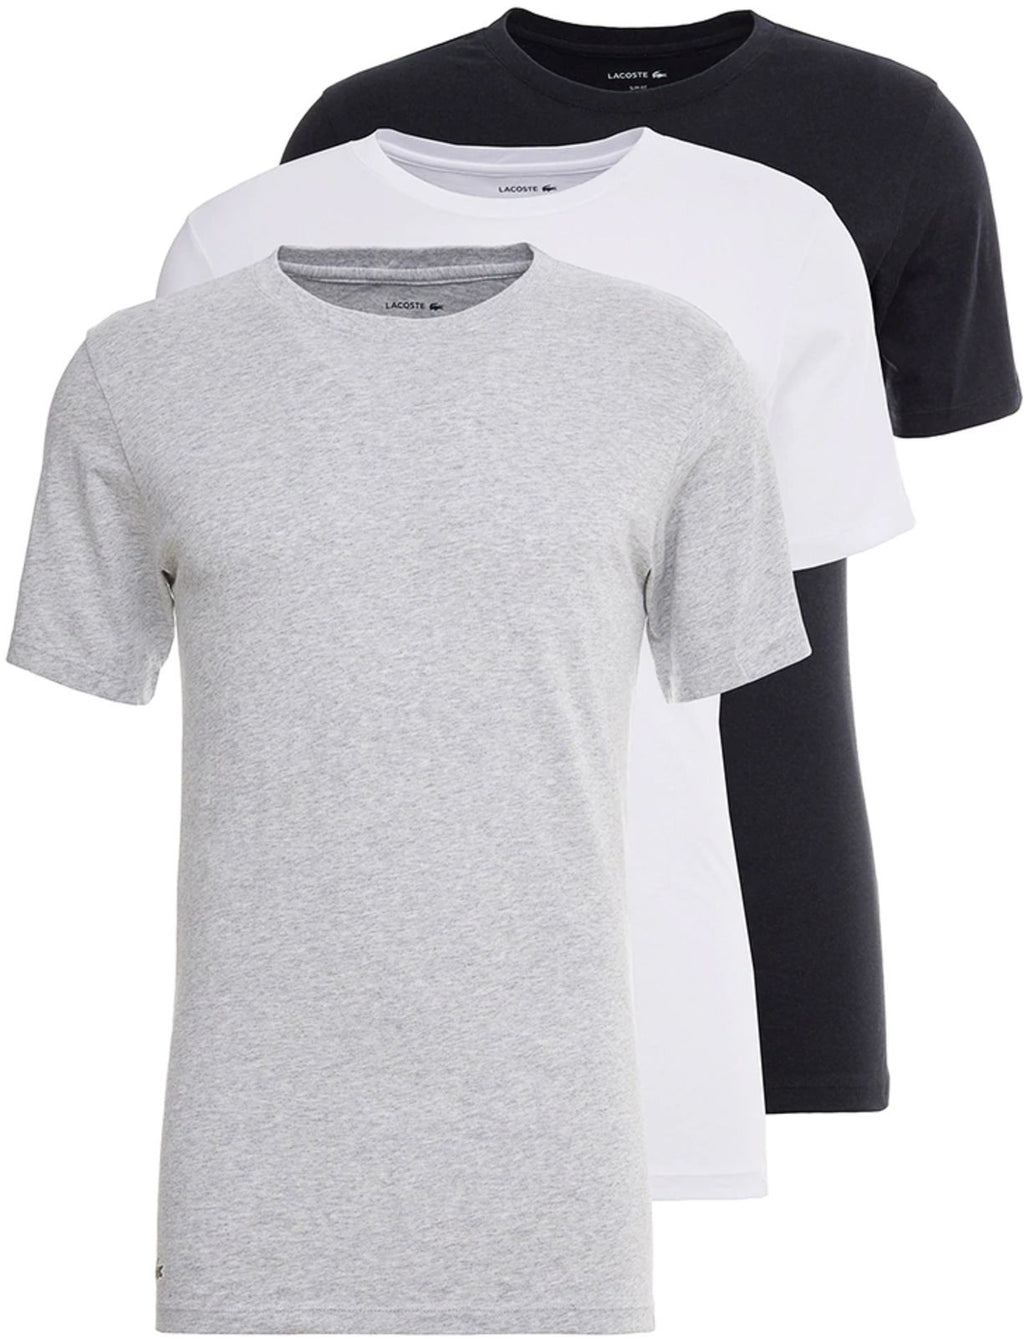 Lacoste 3 Pack Slim Fit T-Shirts